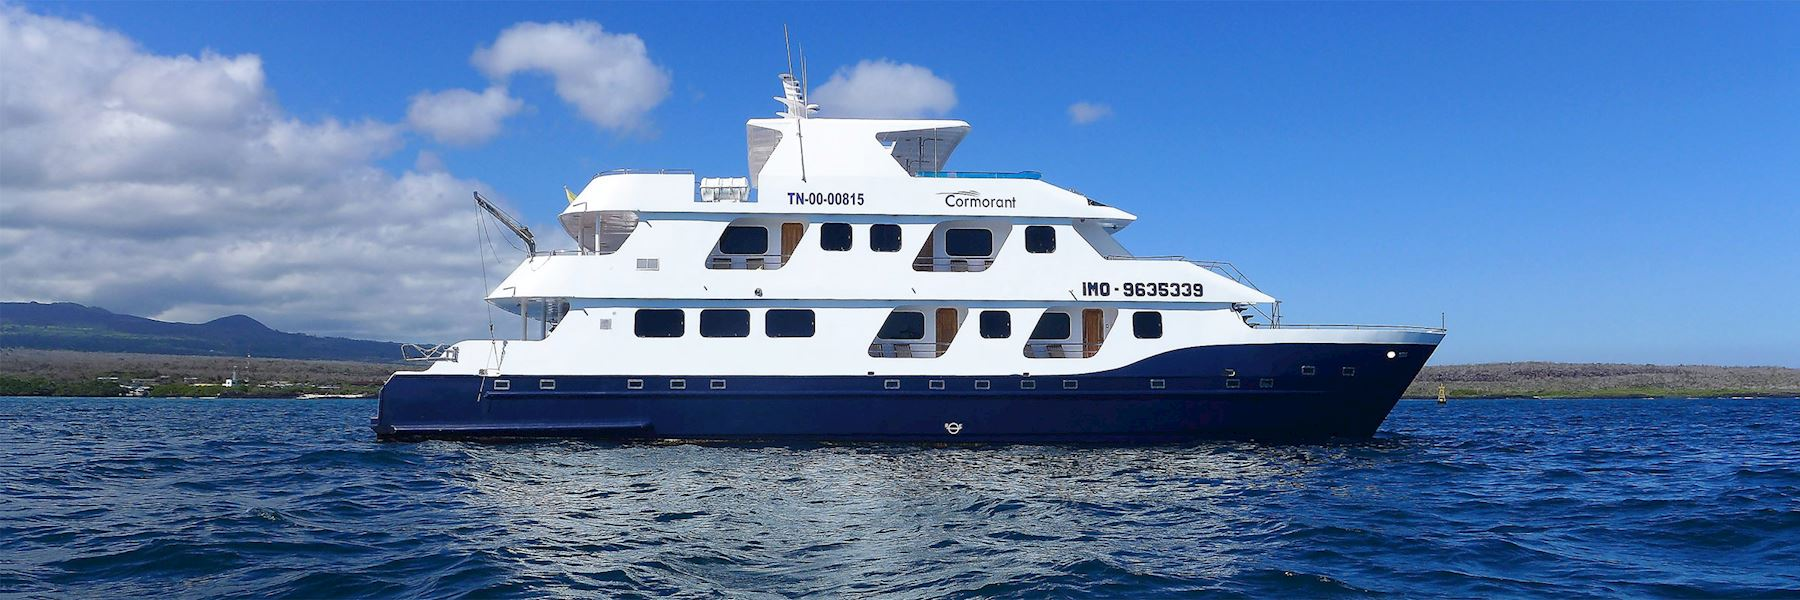 Cruise Ships in The Galapagos Islands: Cormorant